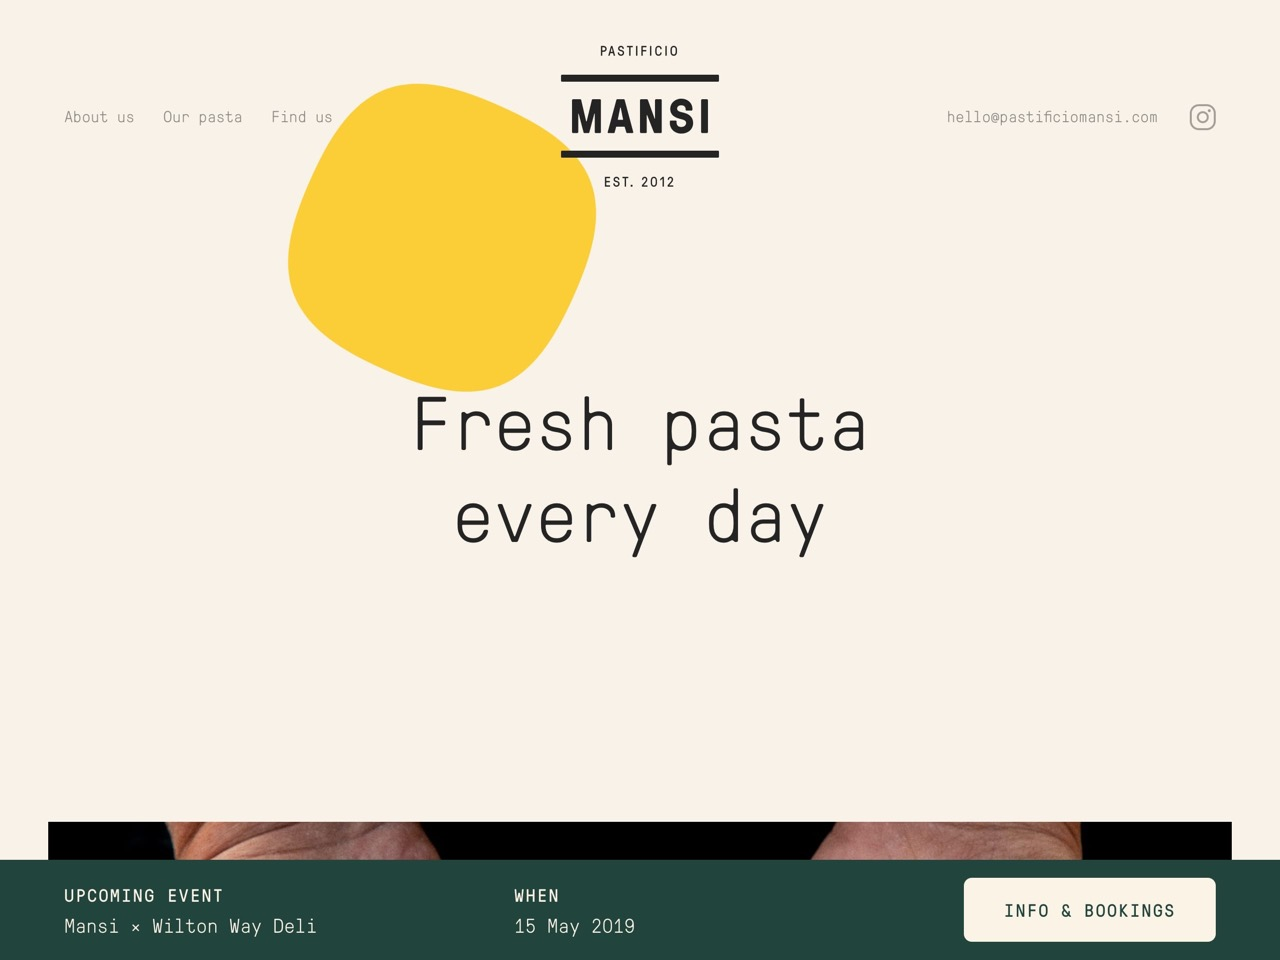 Mansi  fresh pasta producer in london